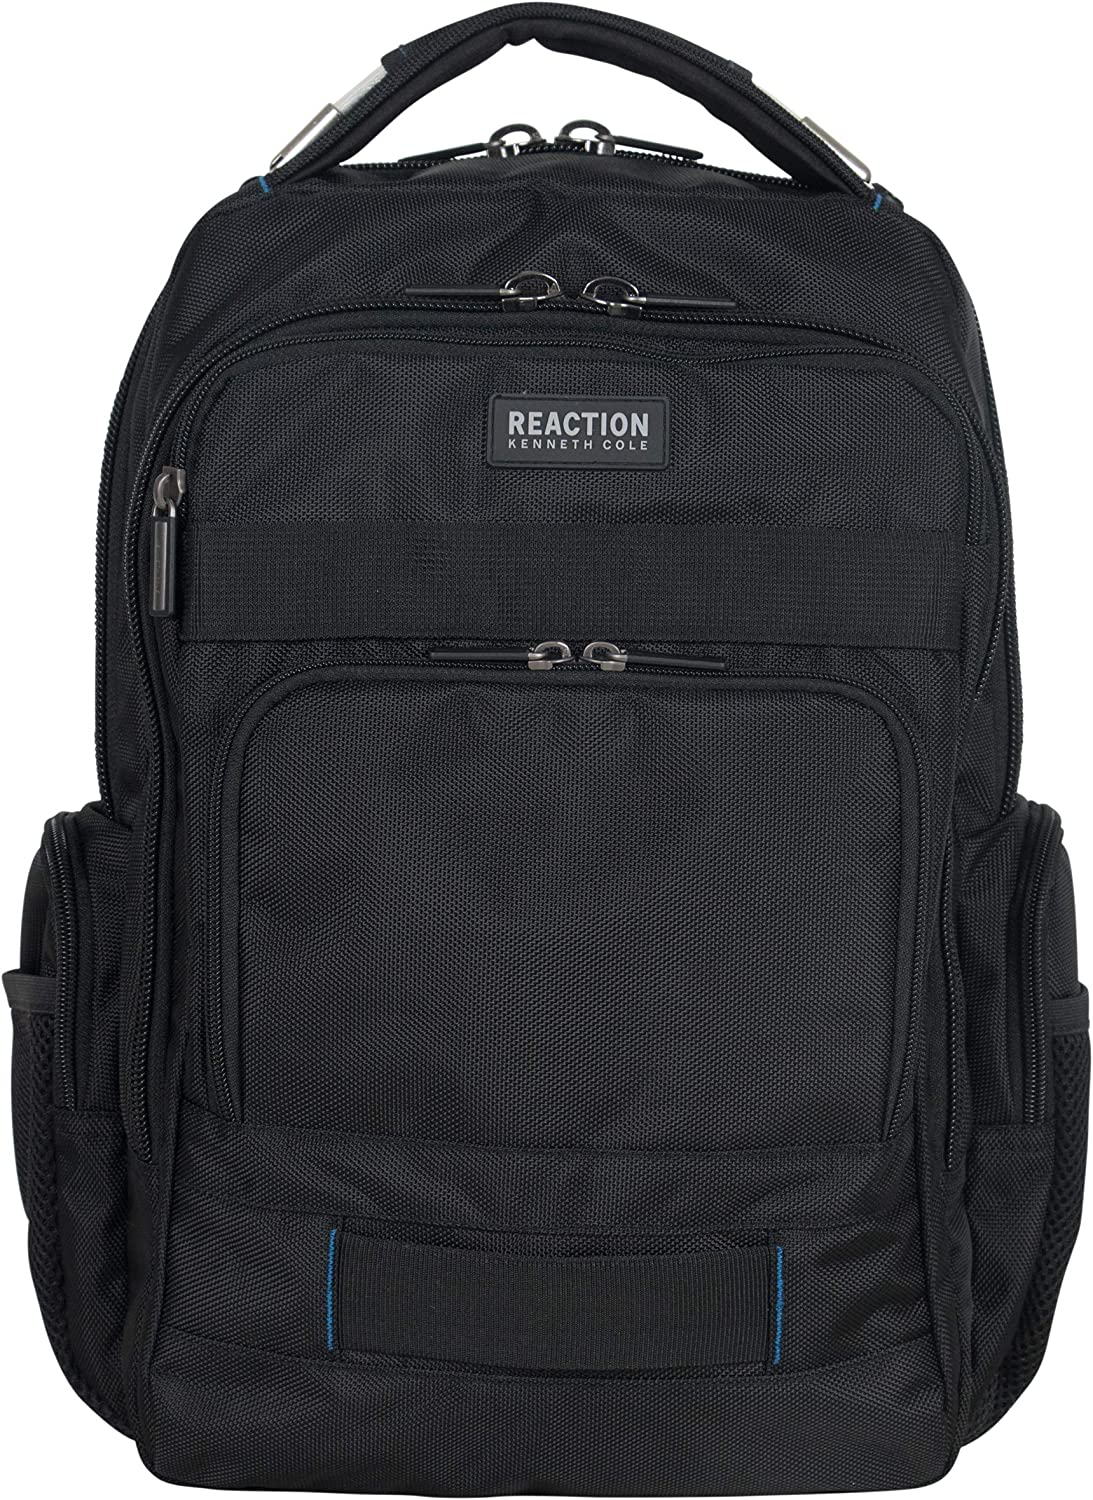 "Kenneth Cole Reaction Urban Traveler 15""-17"" Laptop & Tablet Anti-Theft RFID Business Travel Backpack"